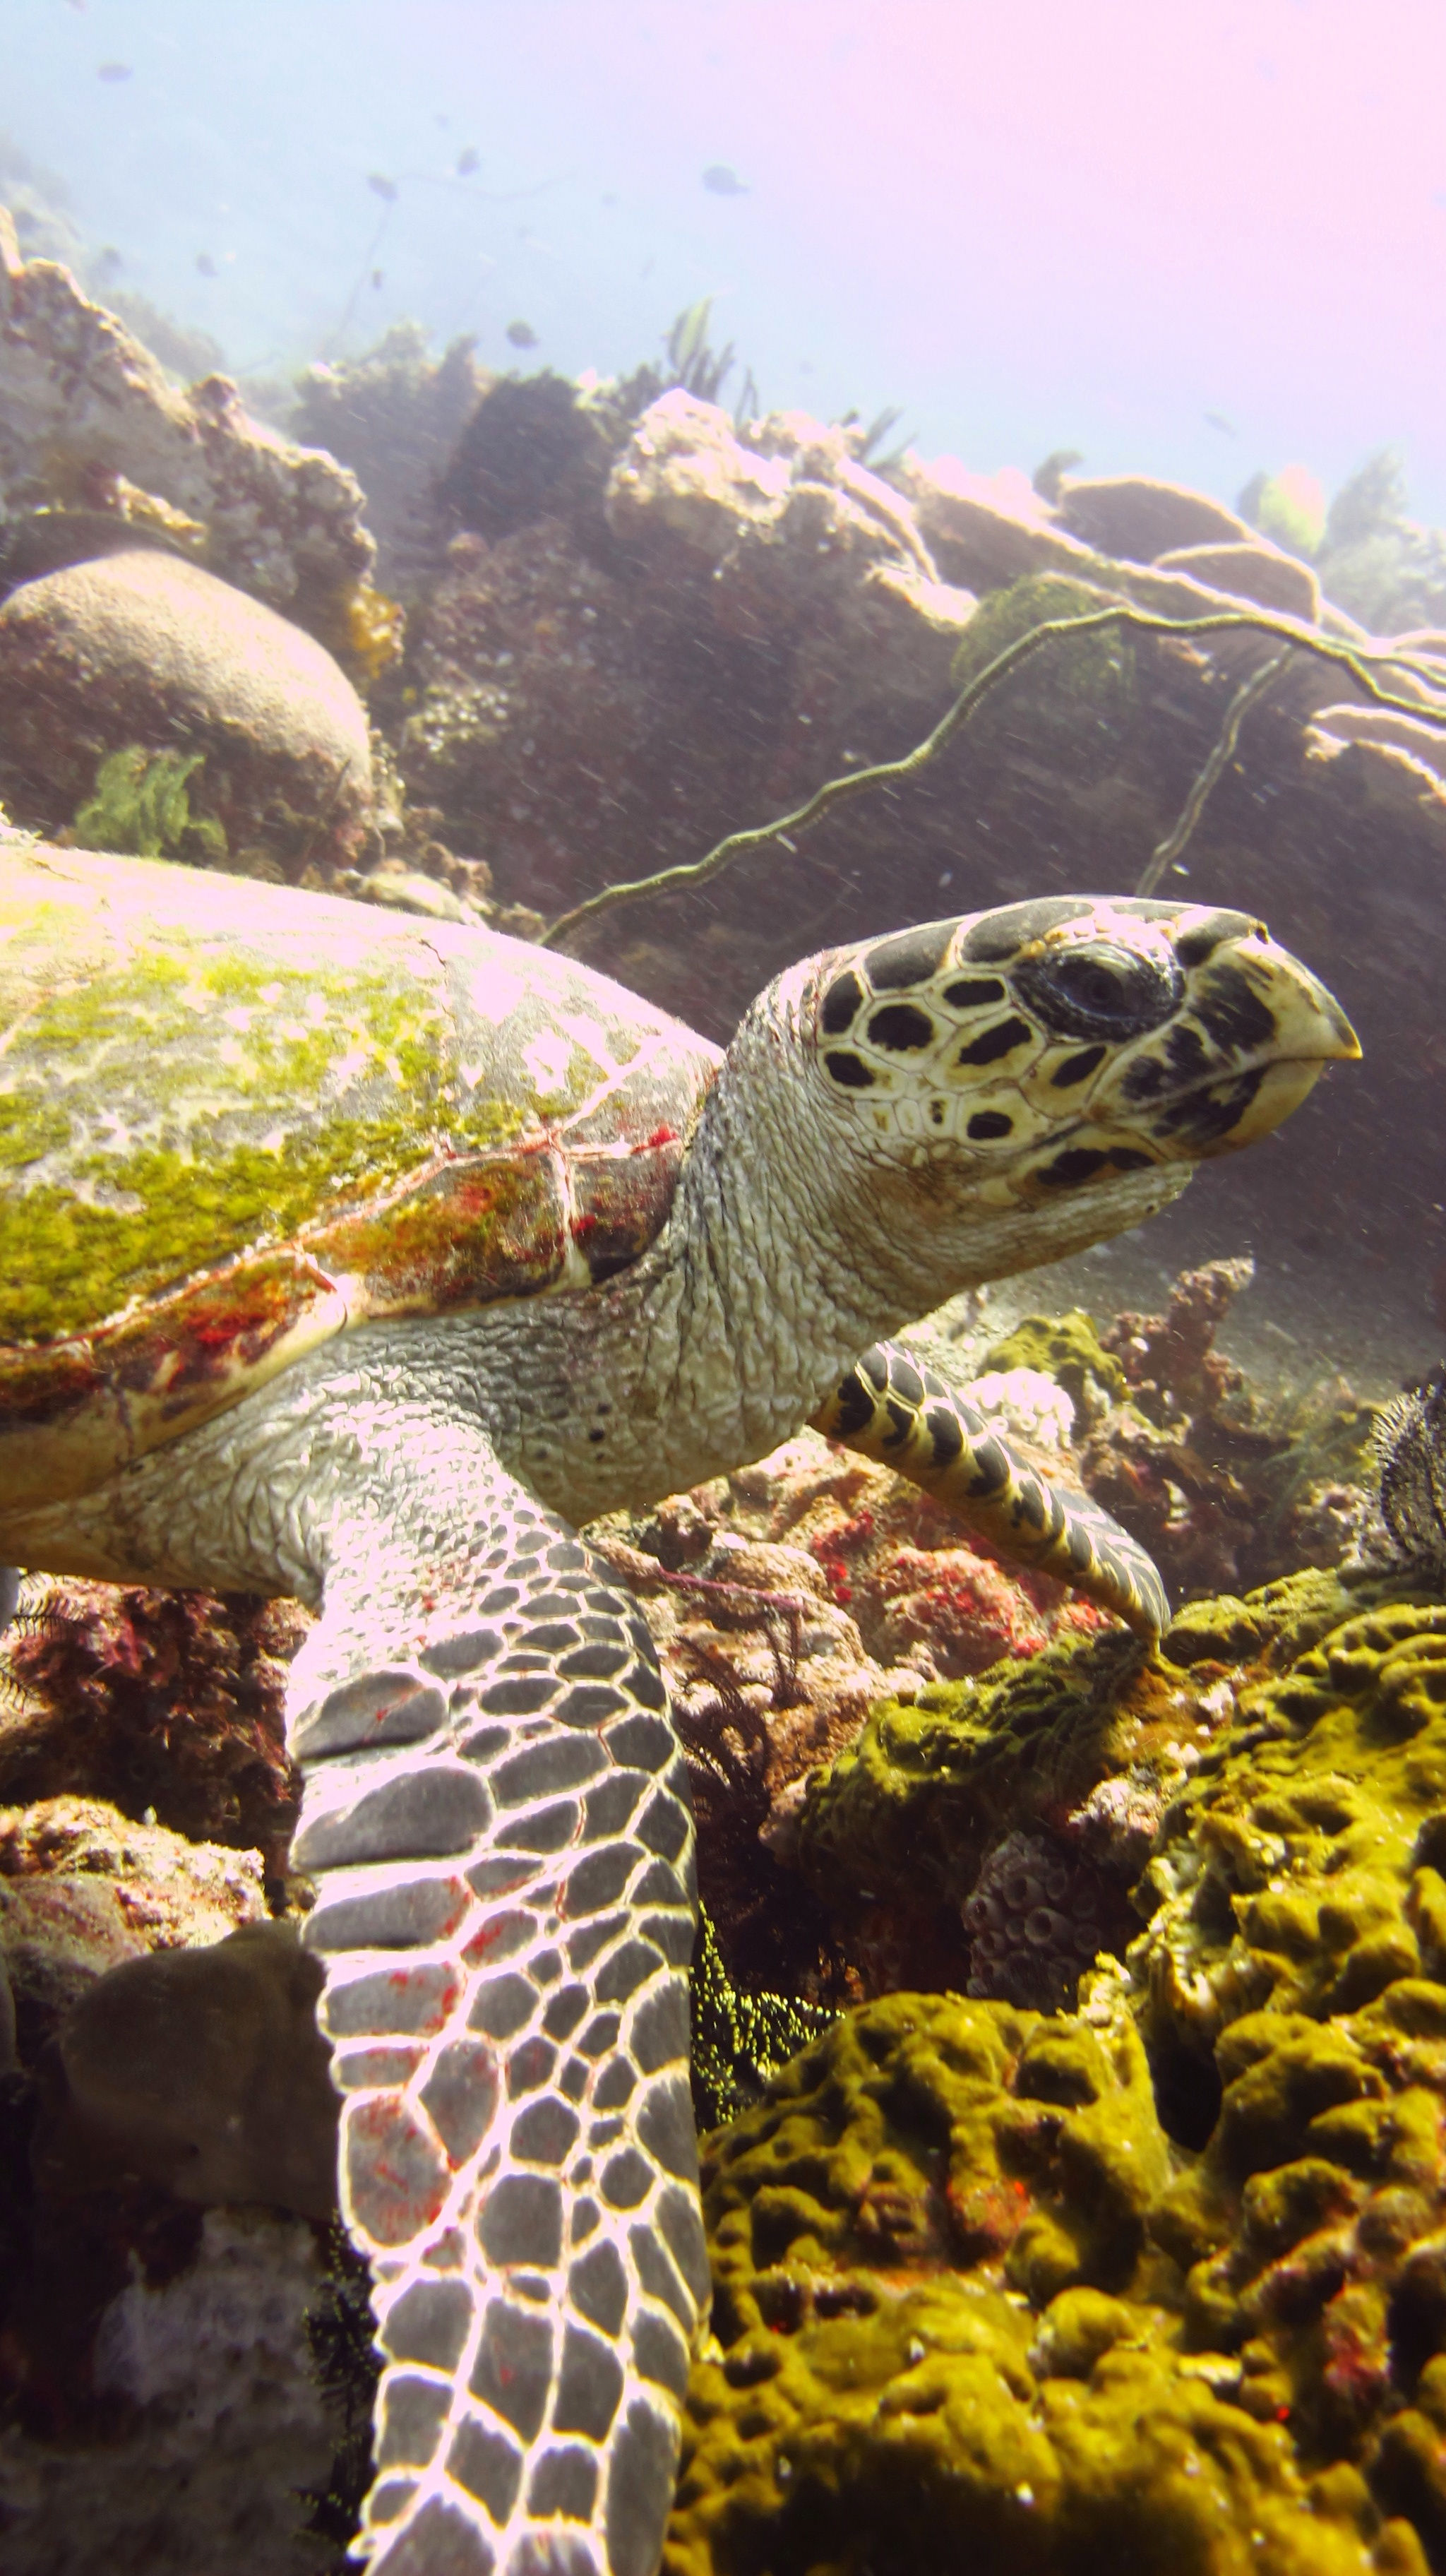 do sea turtles make good pets?